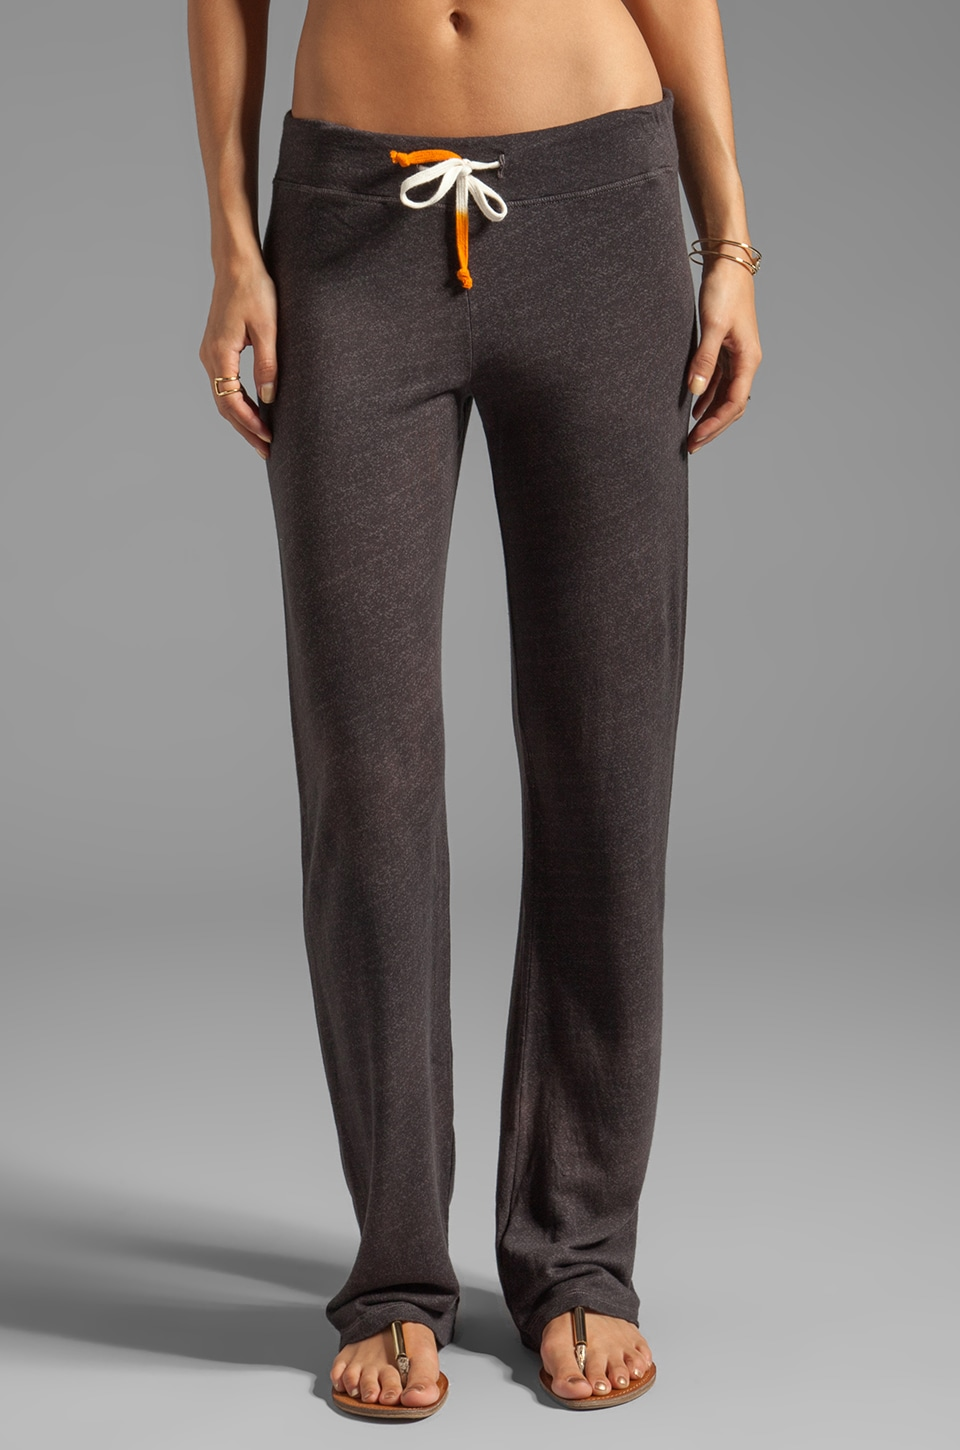 SUNDRY Lounge Sweatpants in Old Black